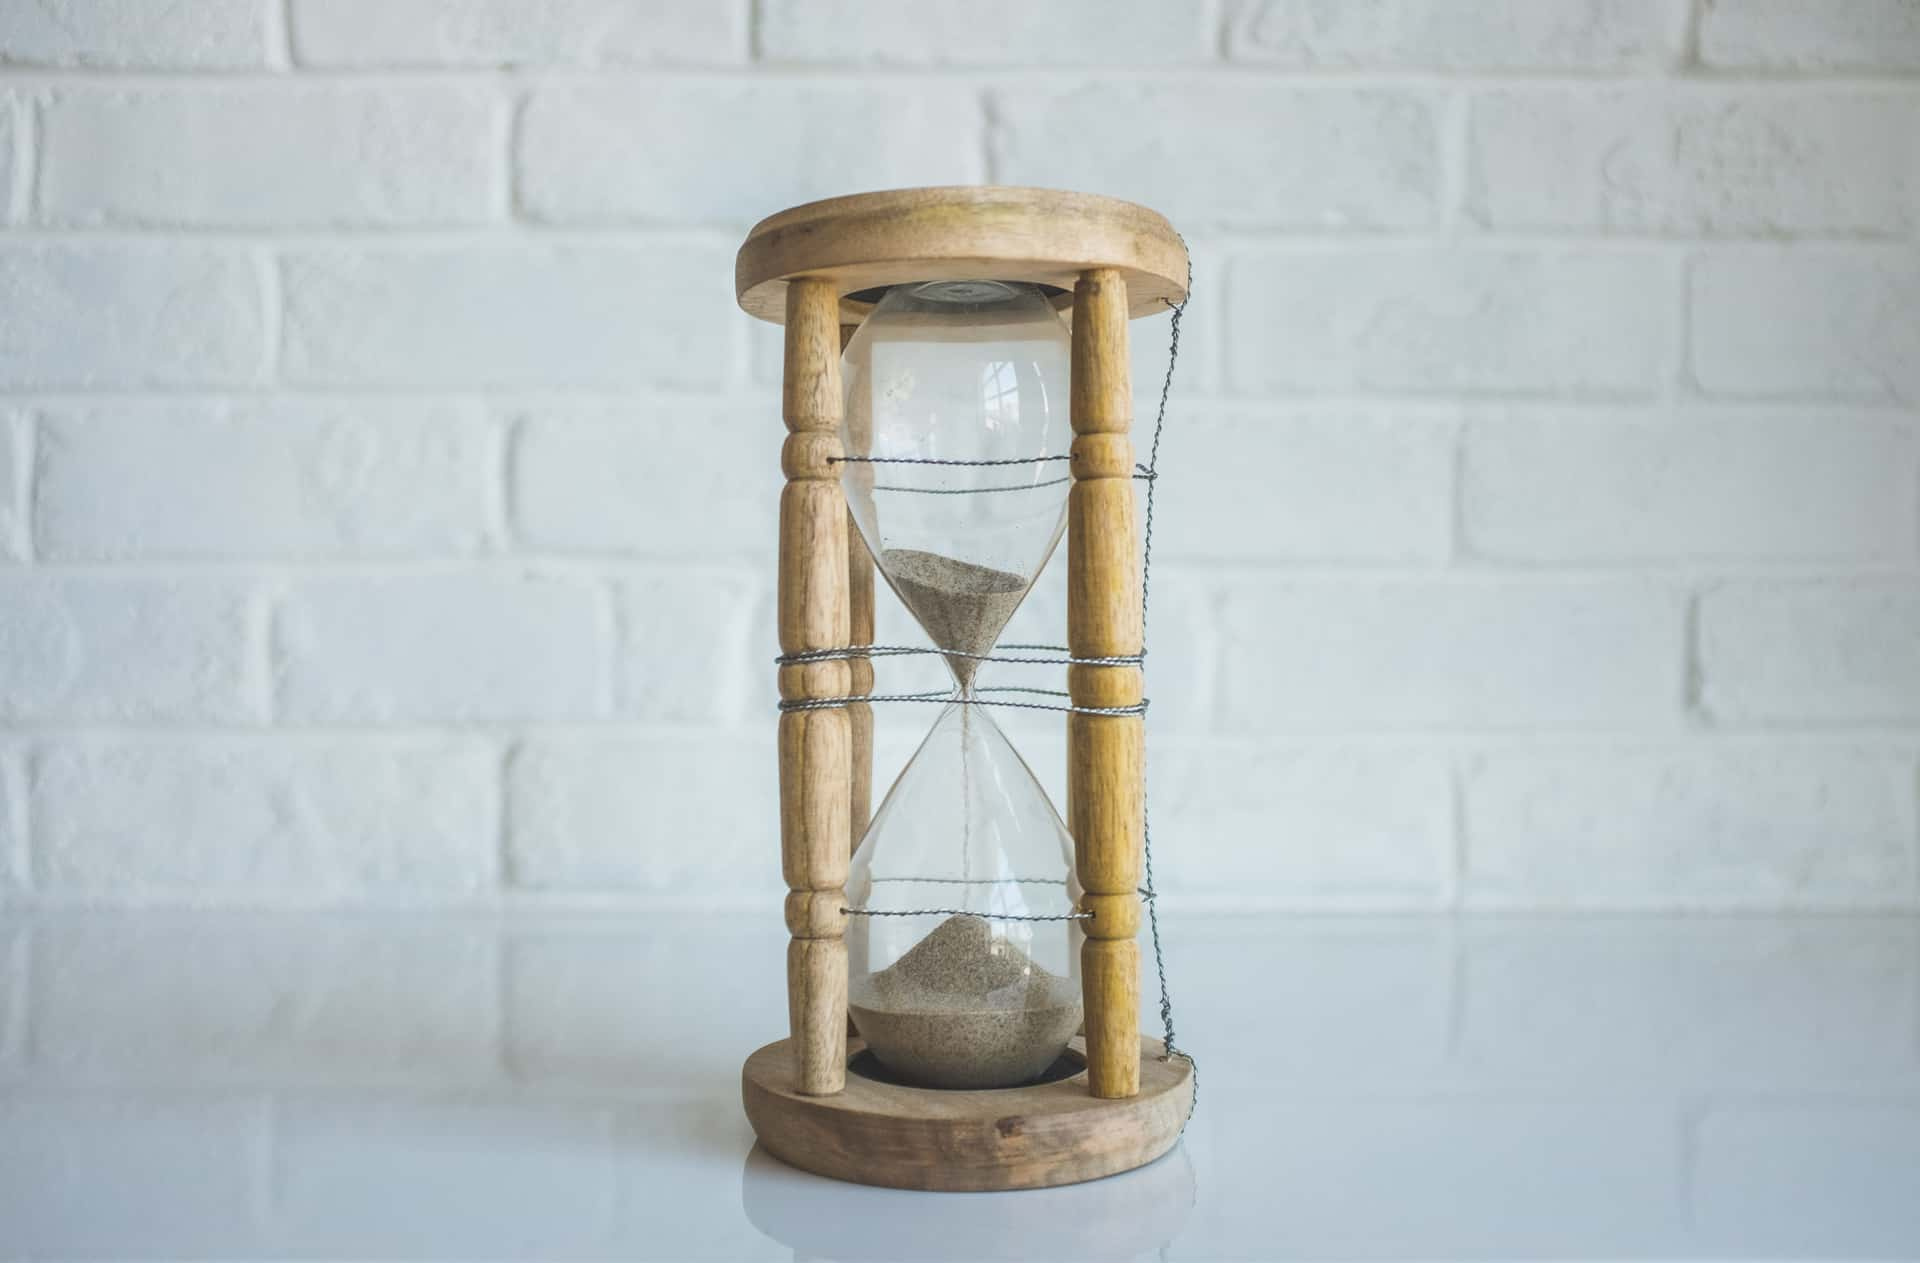 Hour Glass - Showing time running out